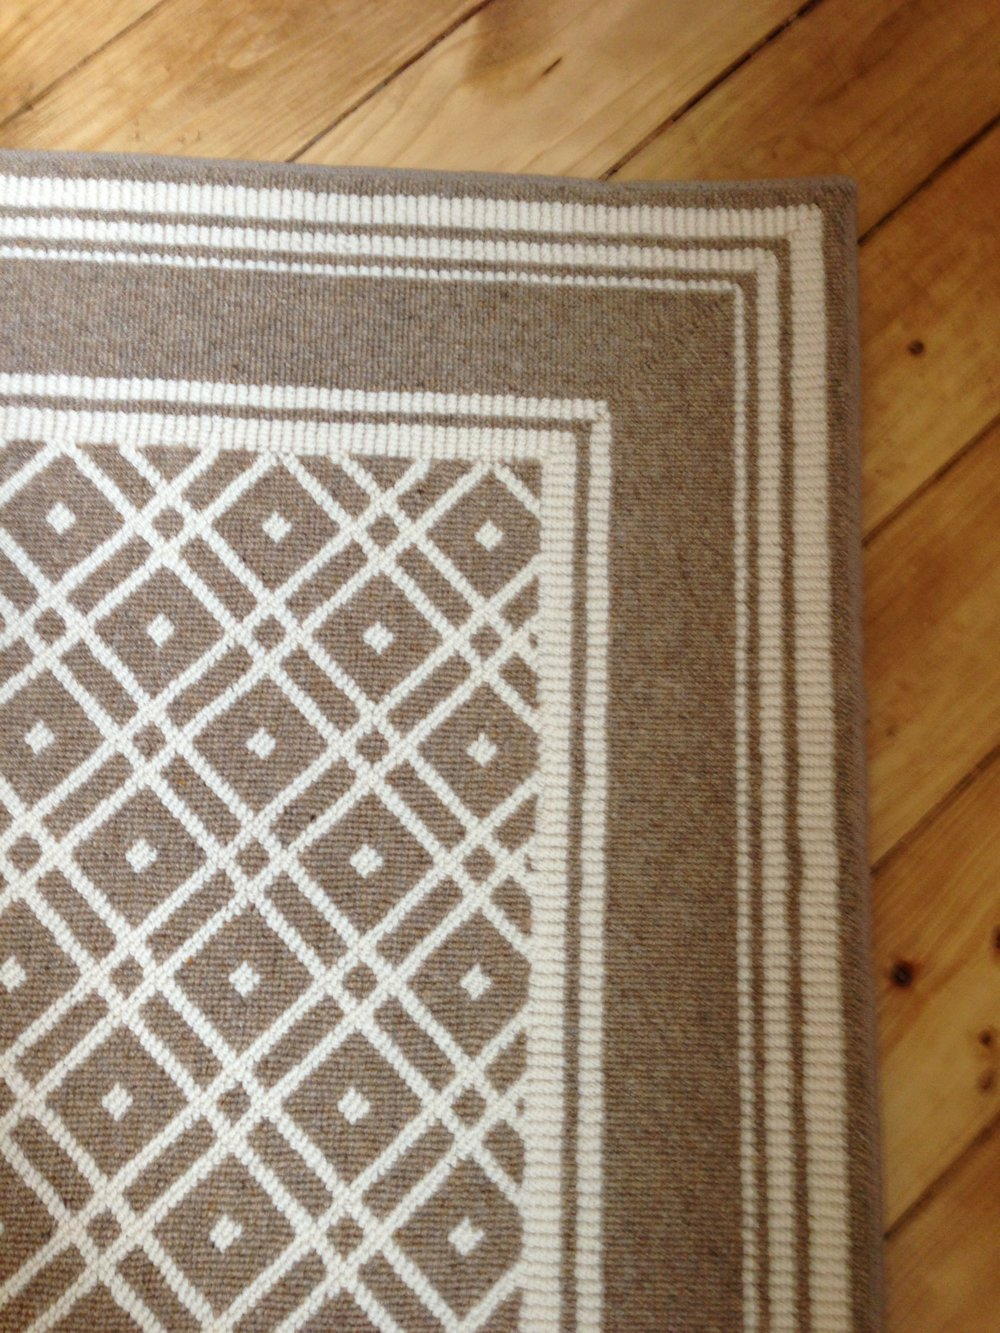 Custom beige and white wool rug with border on pine floors - Americana style gameroom, Carla Aston, Designer